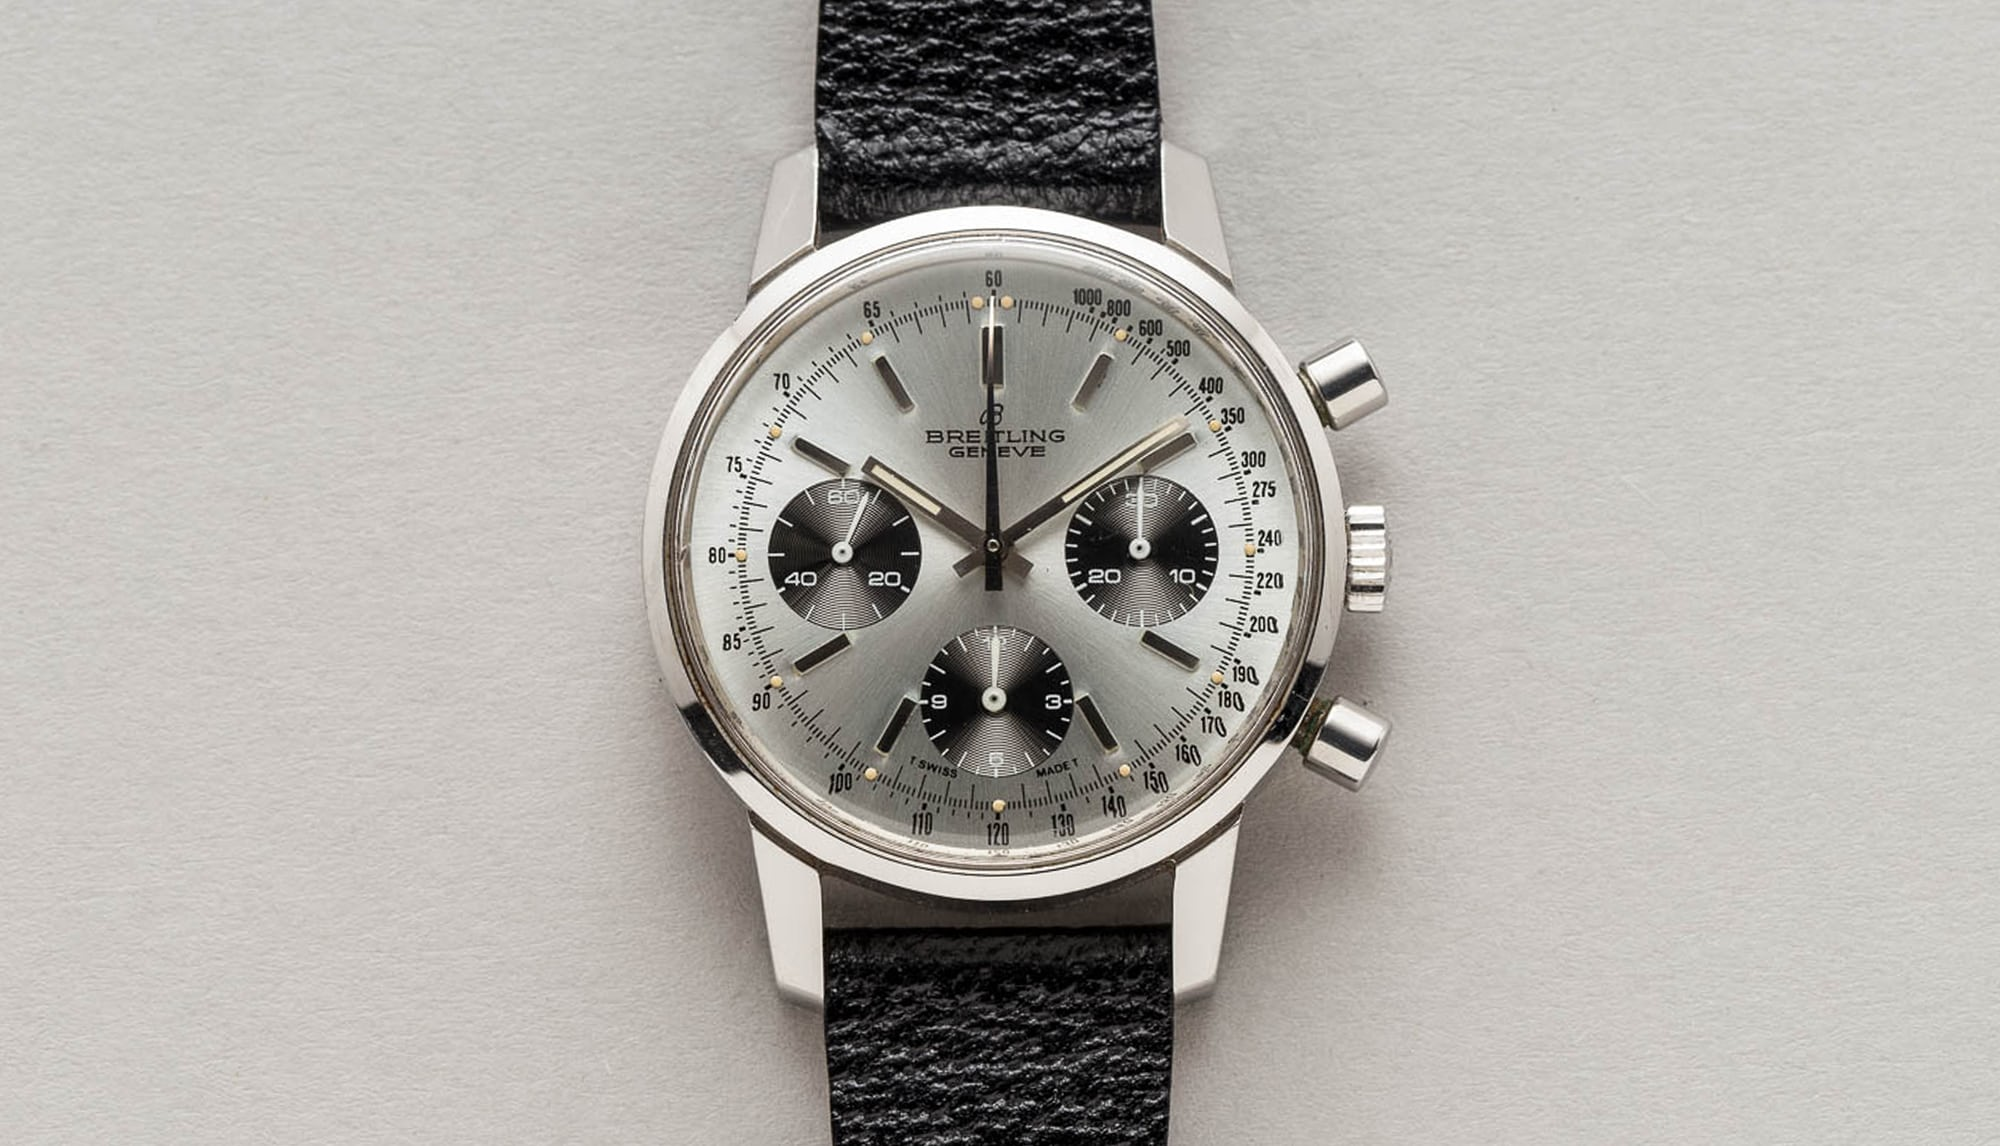 Bring a Loupe: A Funky Rolex, A NOS Breitling, And A One-Off Laurent Ferrier